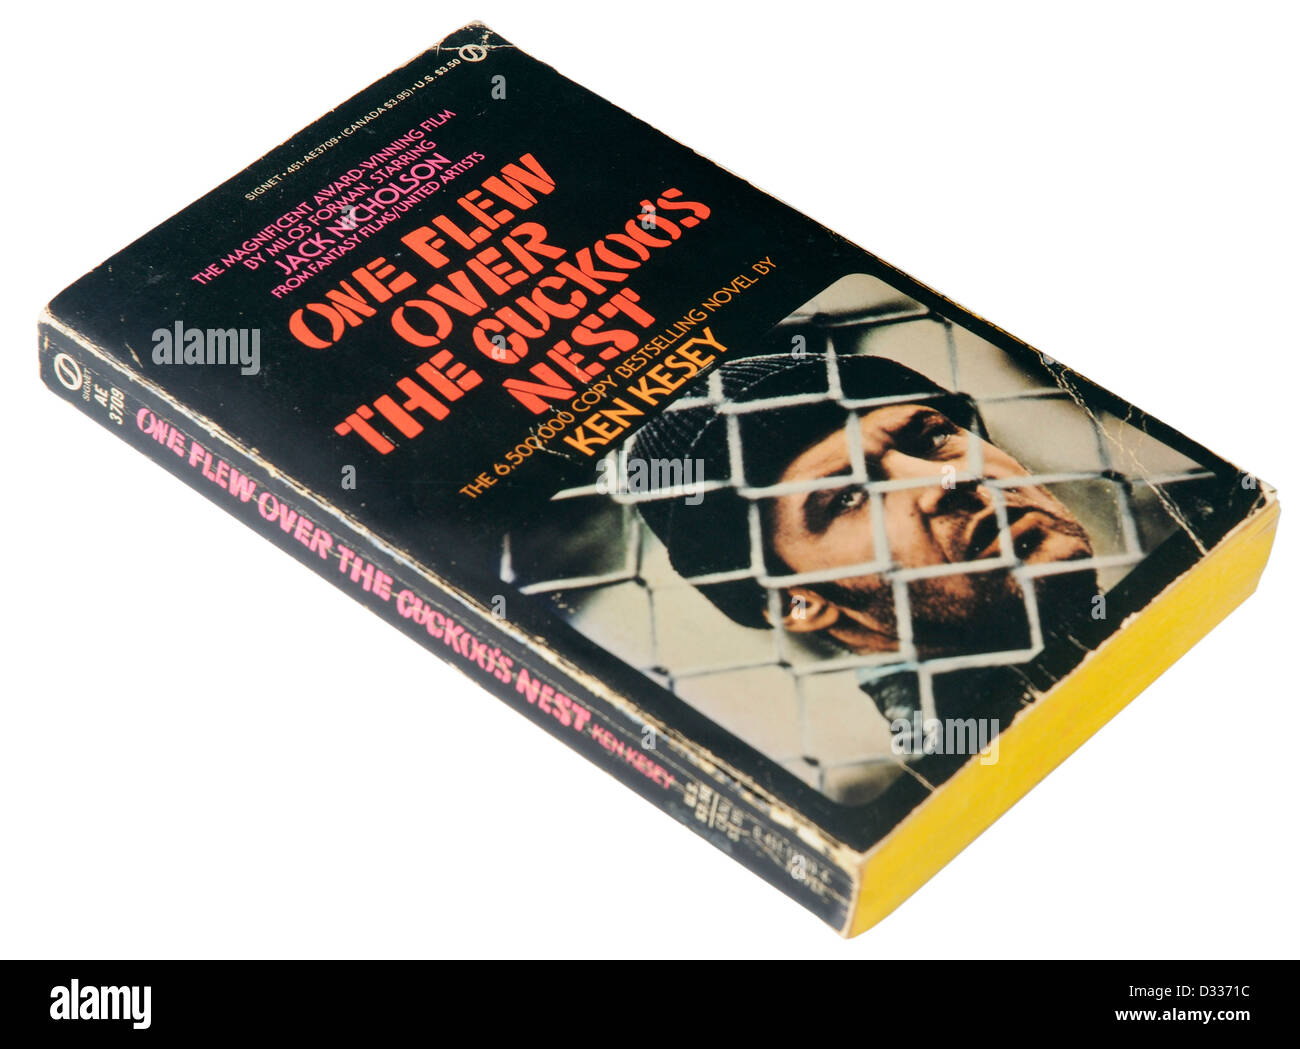 One Flew Over the Cuckoo's Nest by Ken Kesey - Stock Image